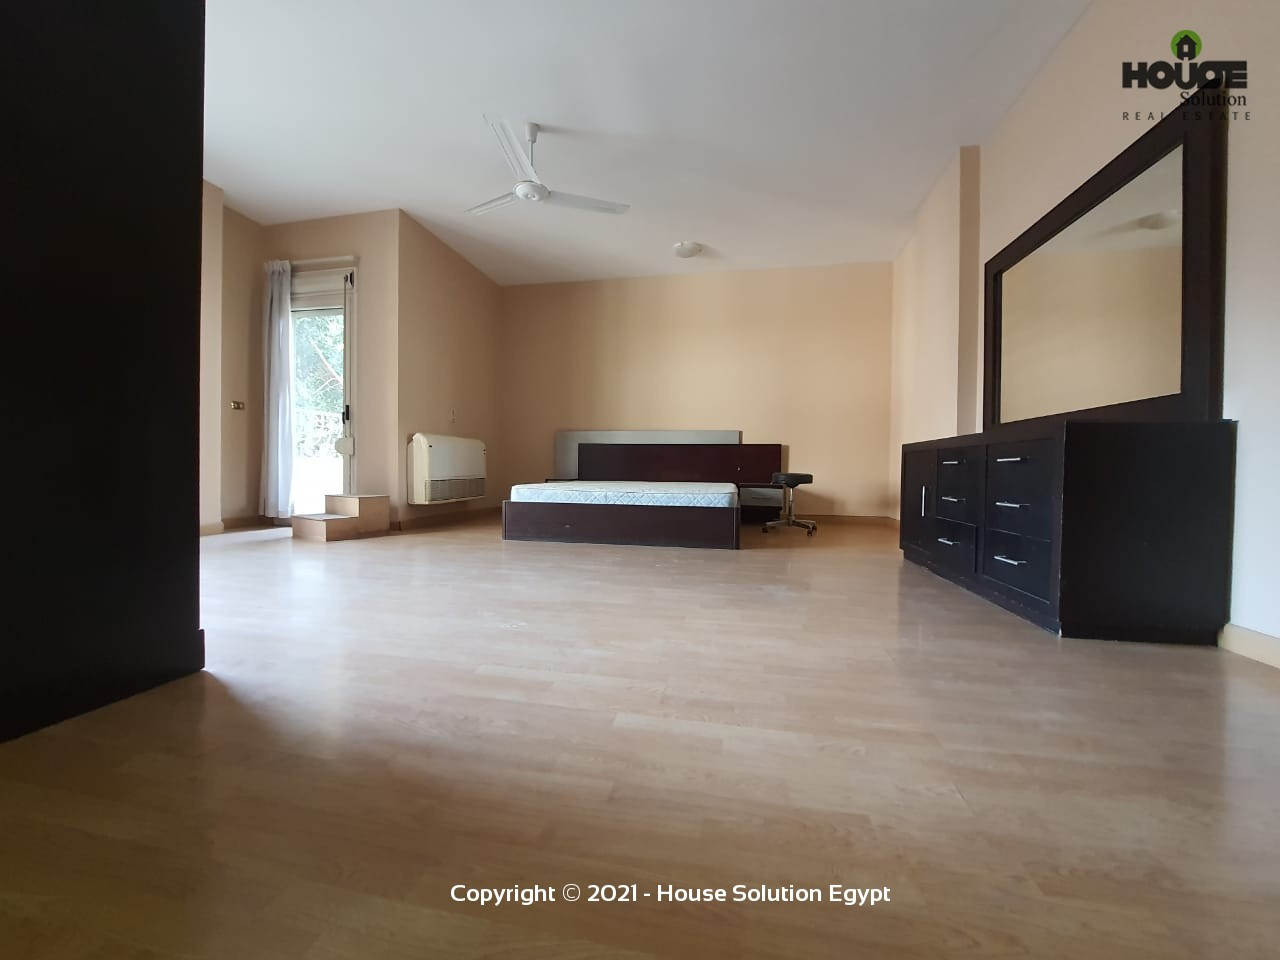 Amazing Furnished 3 Bedroom Apartment In The Prime Location Of Degla El Maadi - 4946 Featured Image